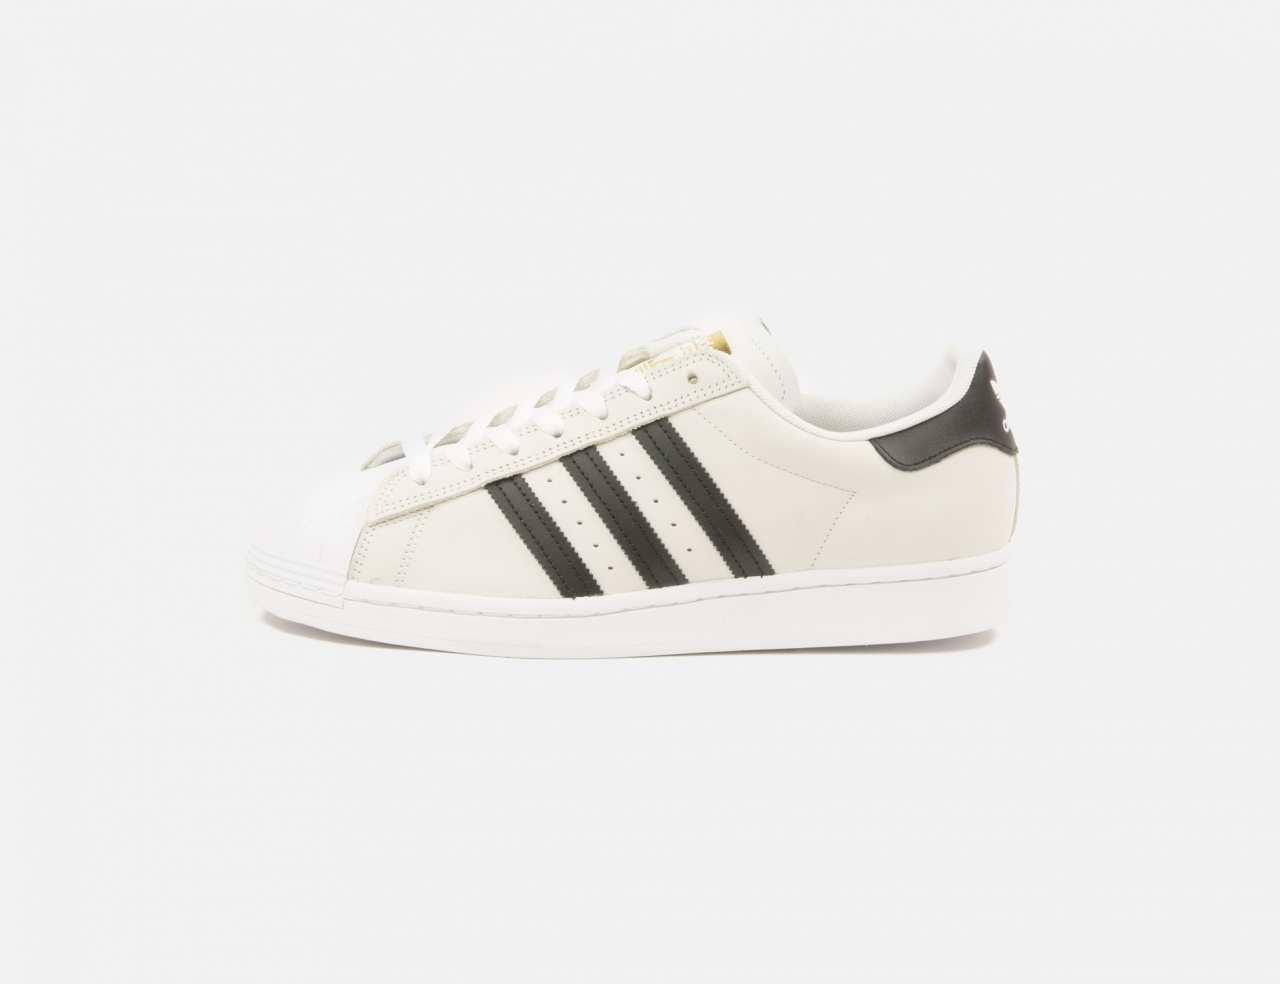 Adidas Superstar Sneaker - White/Black